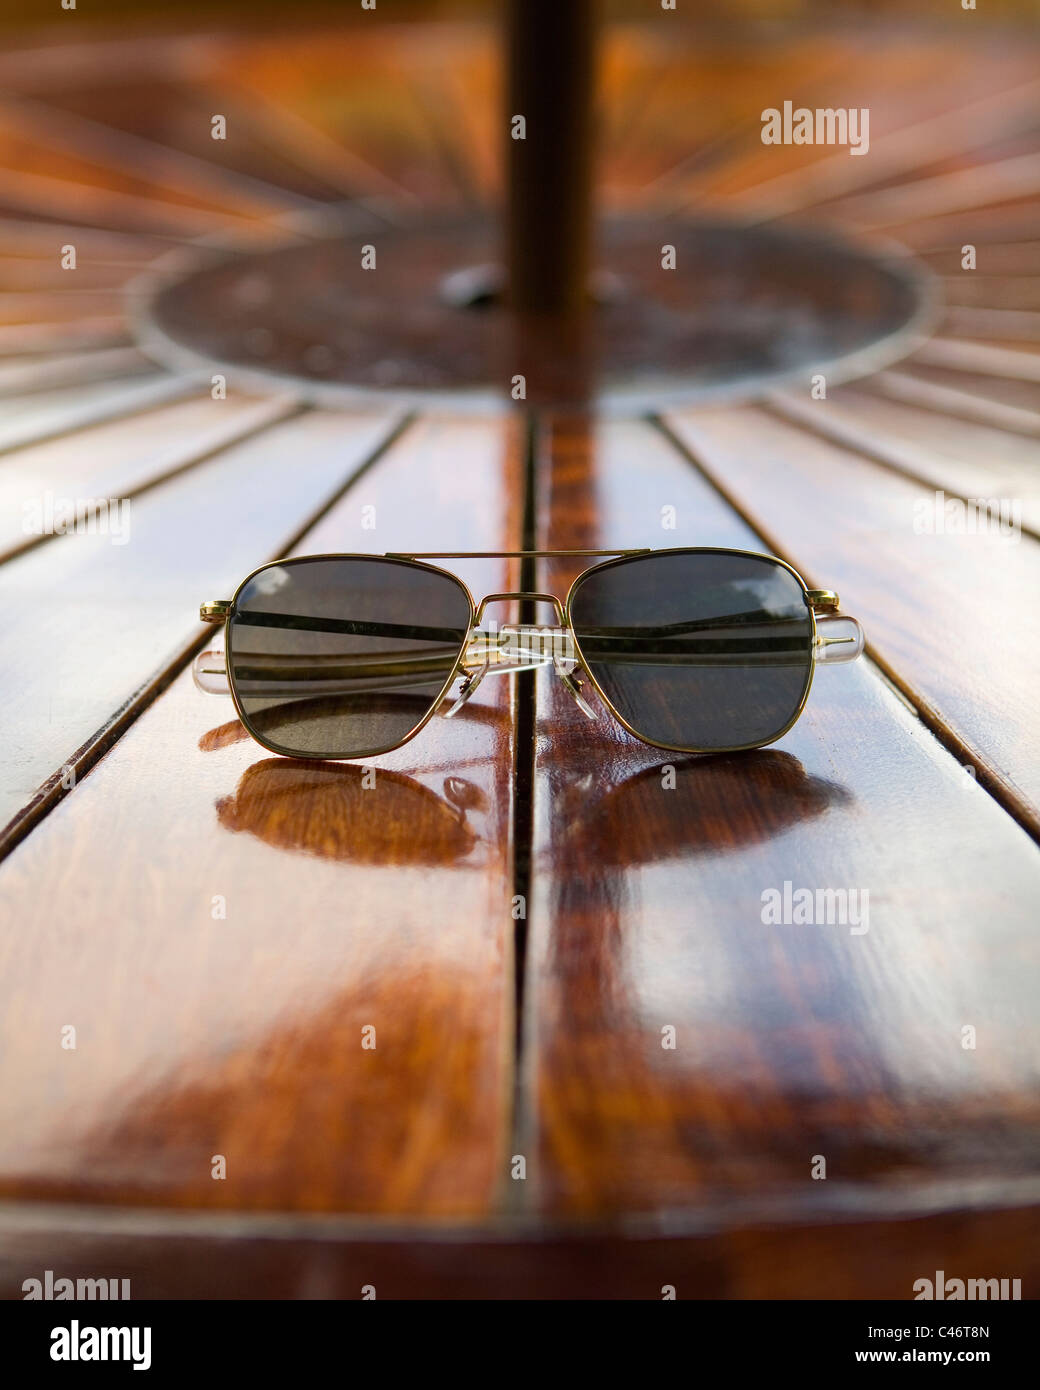 A pair of aviator sunglasses sit on a wooden table - Stock Image